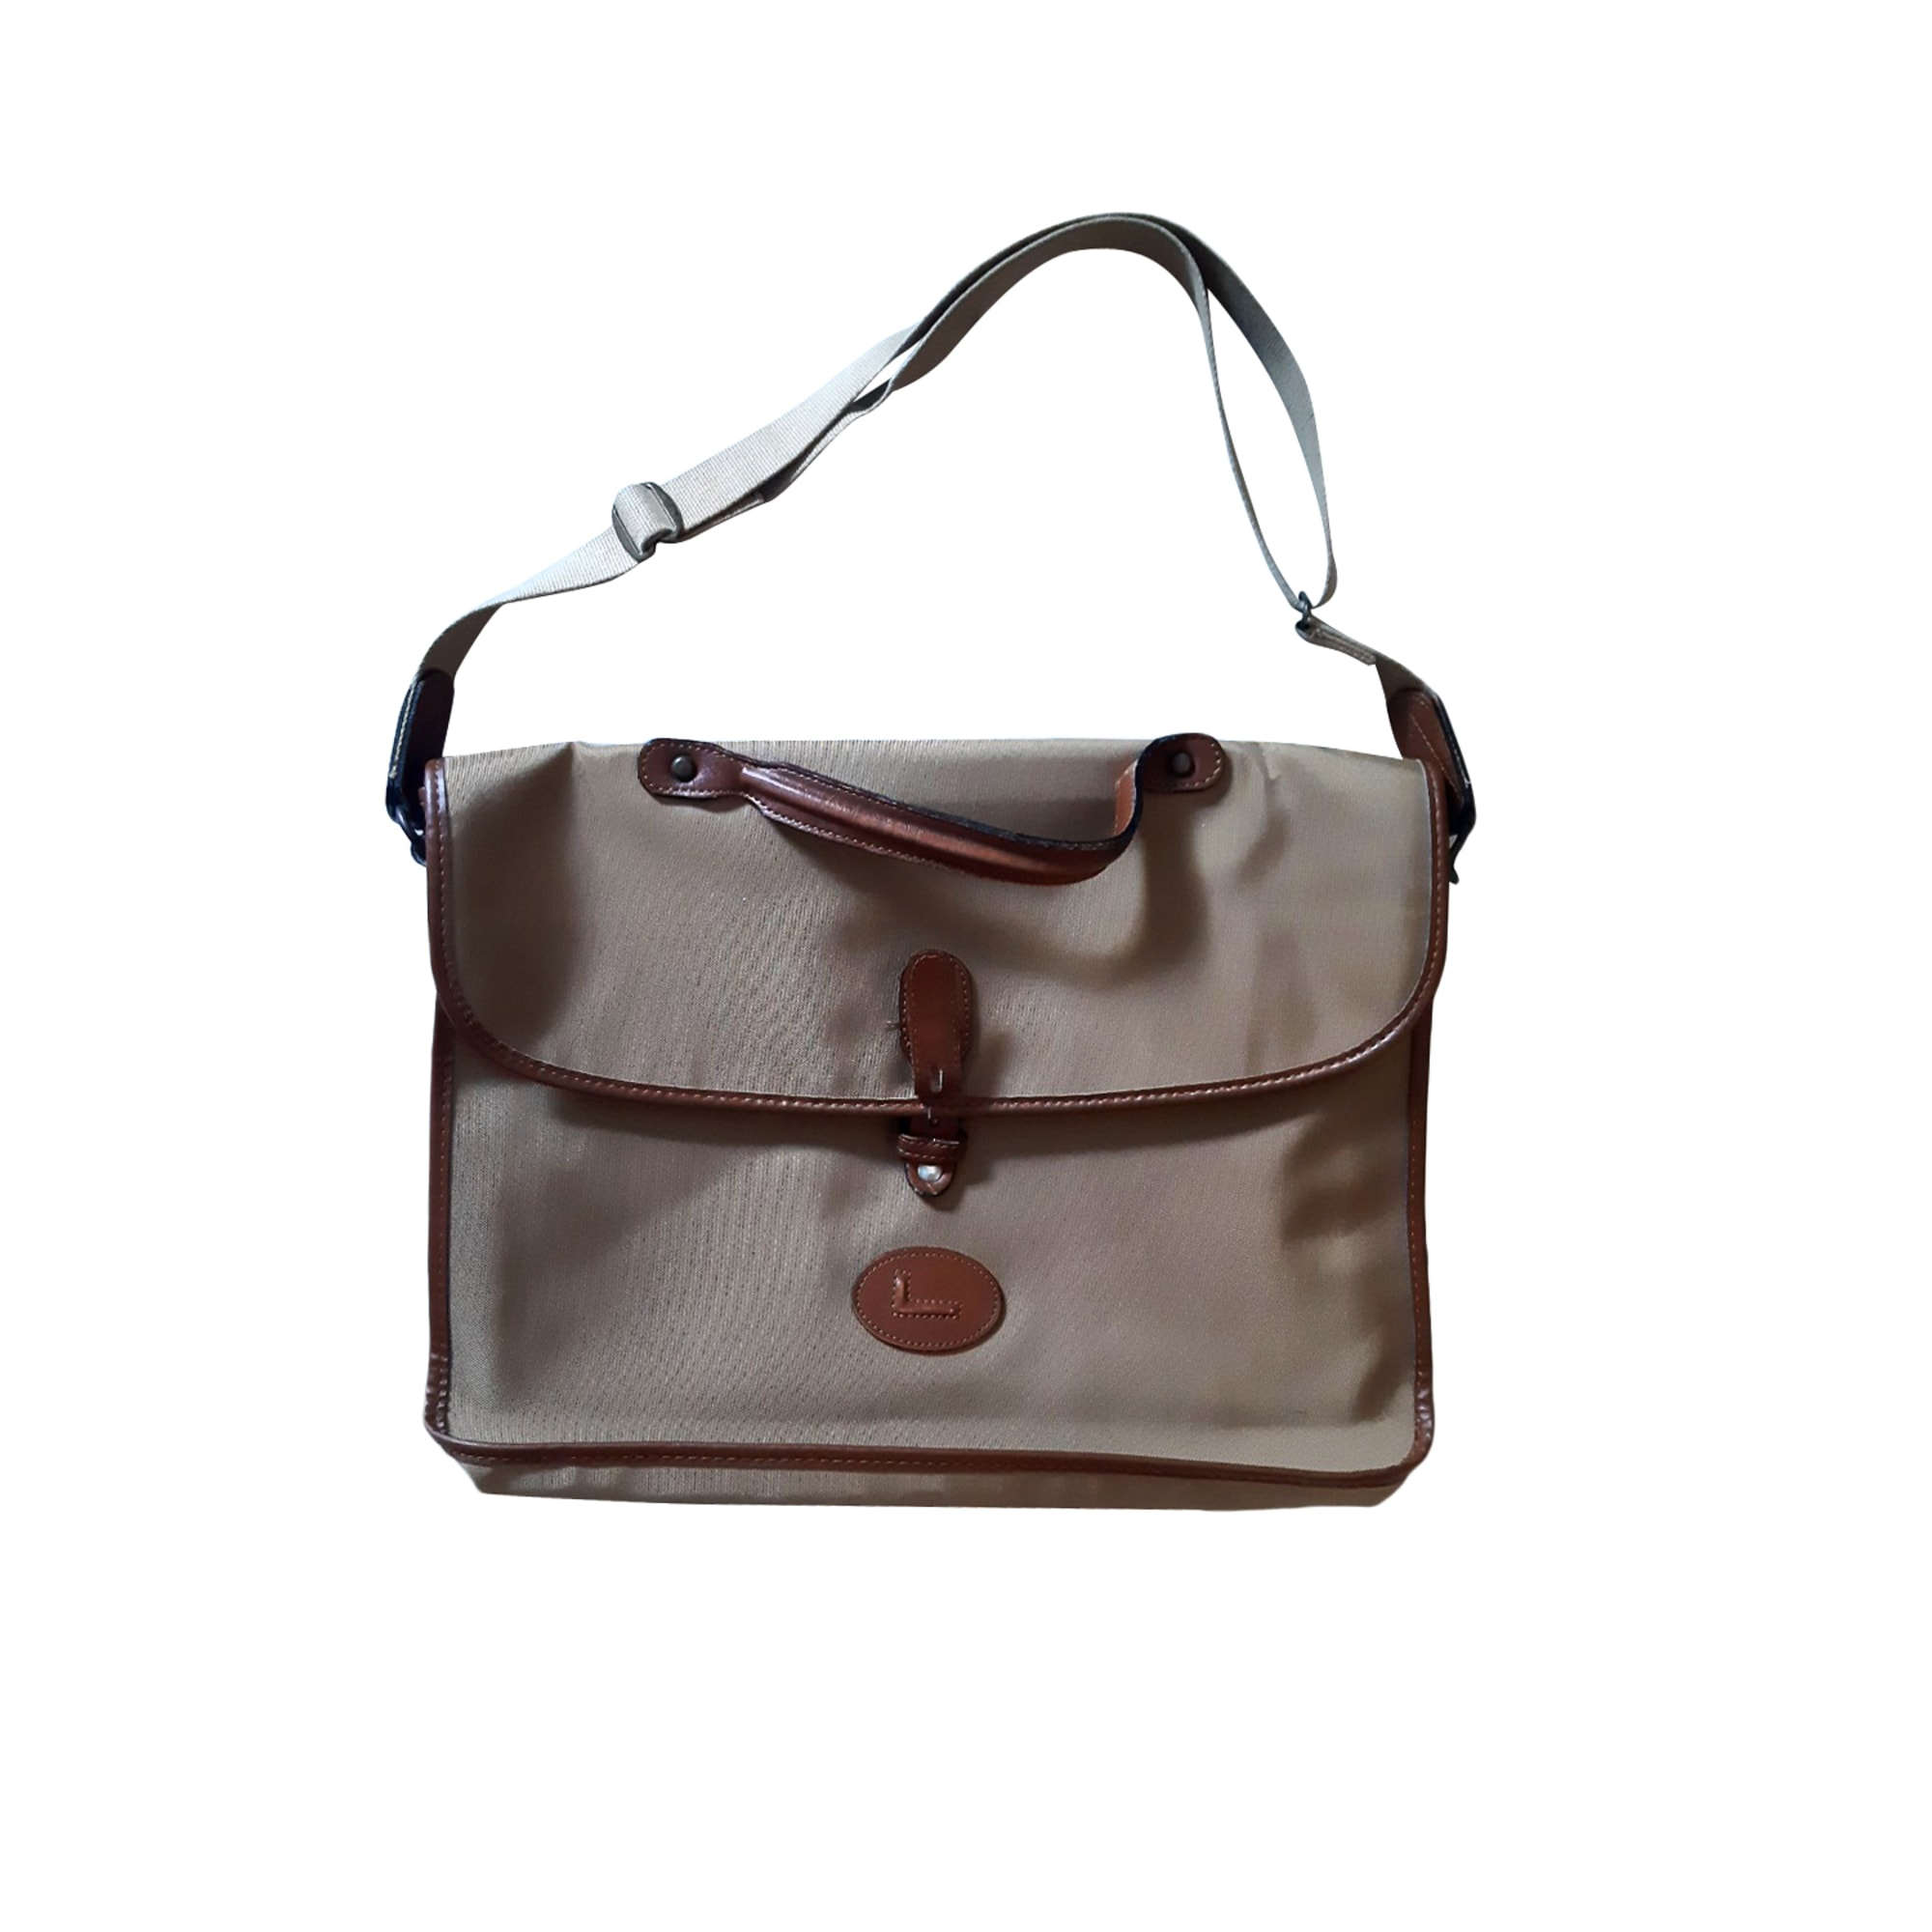 Porte documents, serviette LANCEL Beige, camel